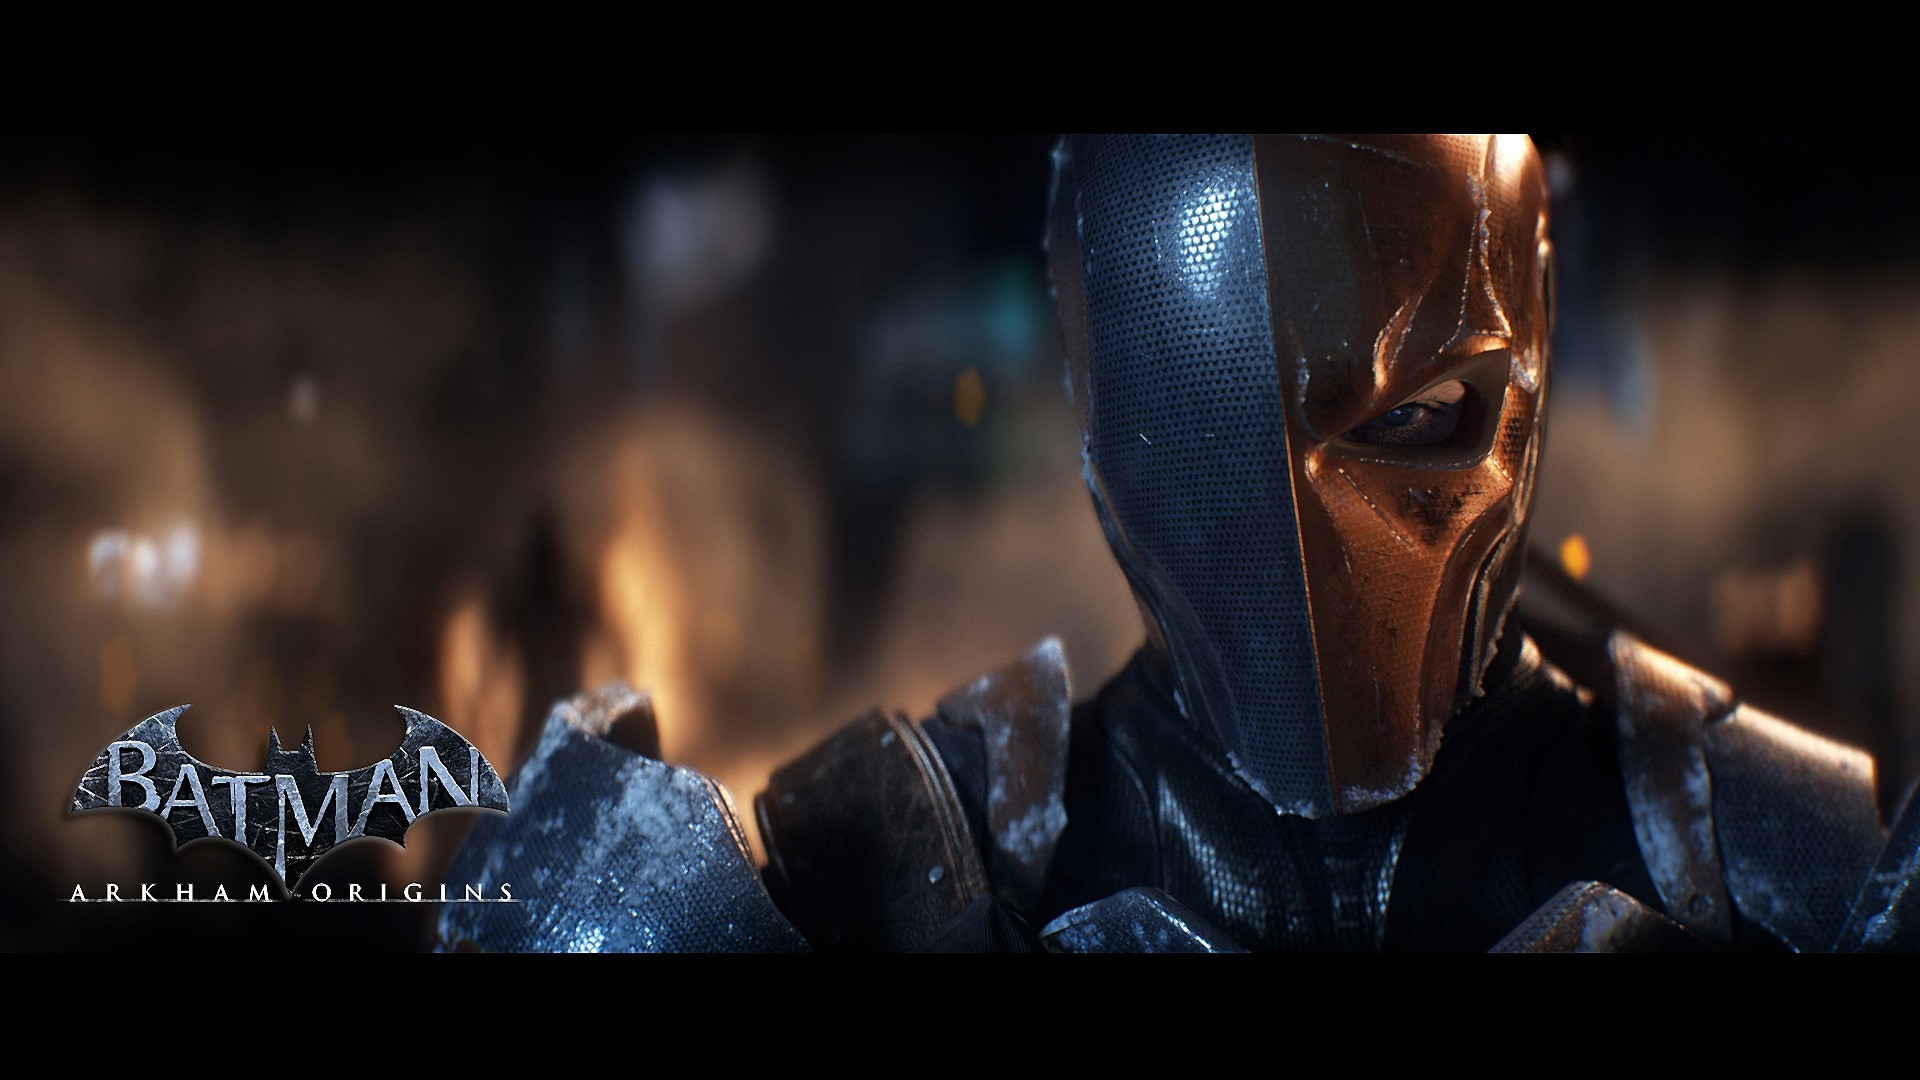 Batman Arkham Origins Batman Deathstroke wallpaper 1920x1080 1920x1080